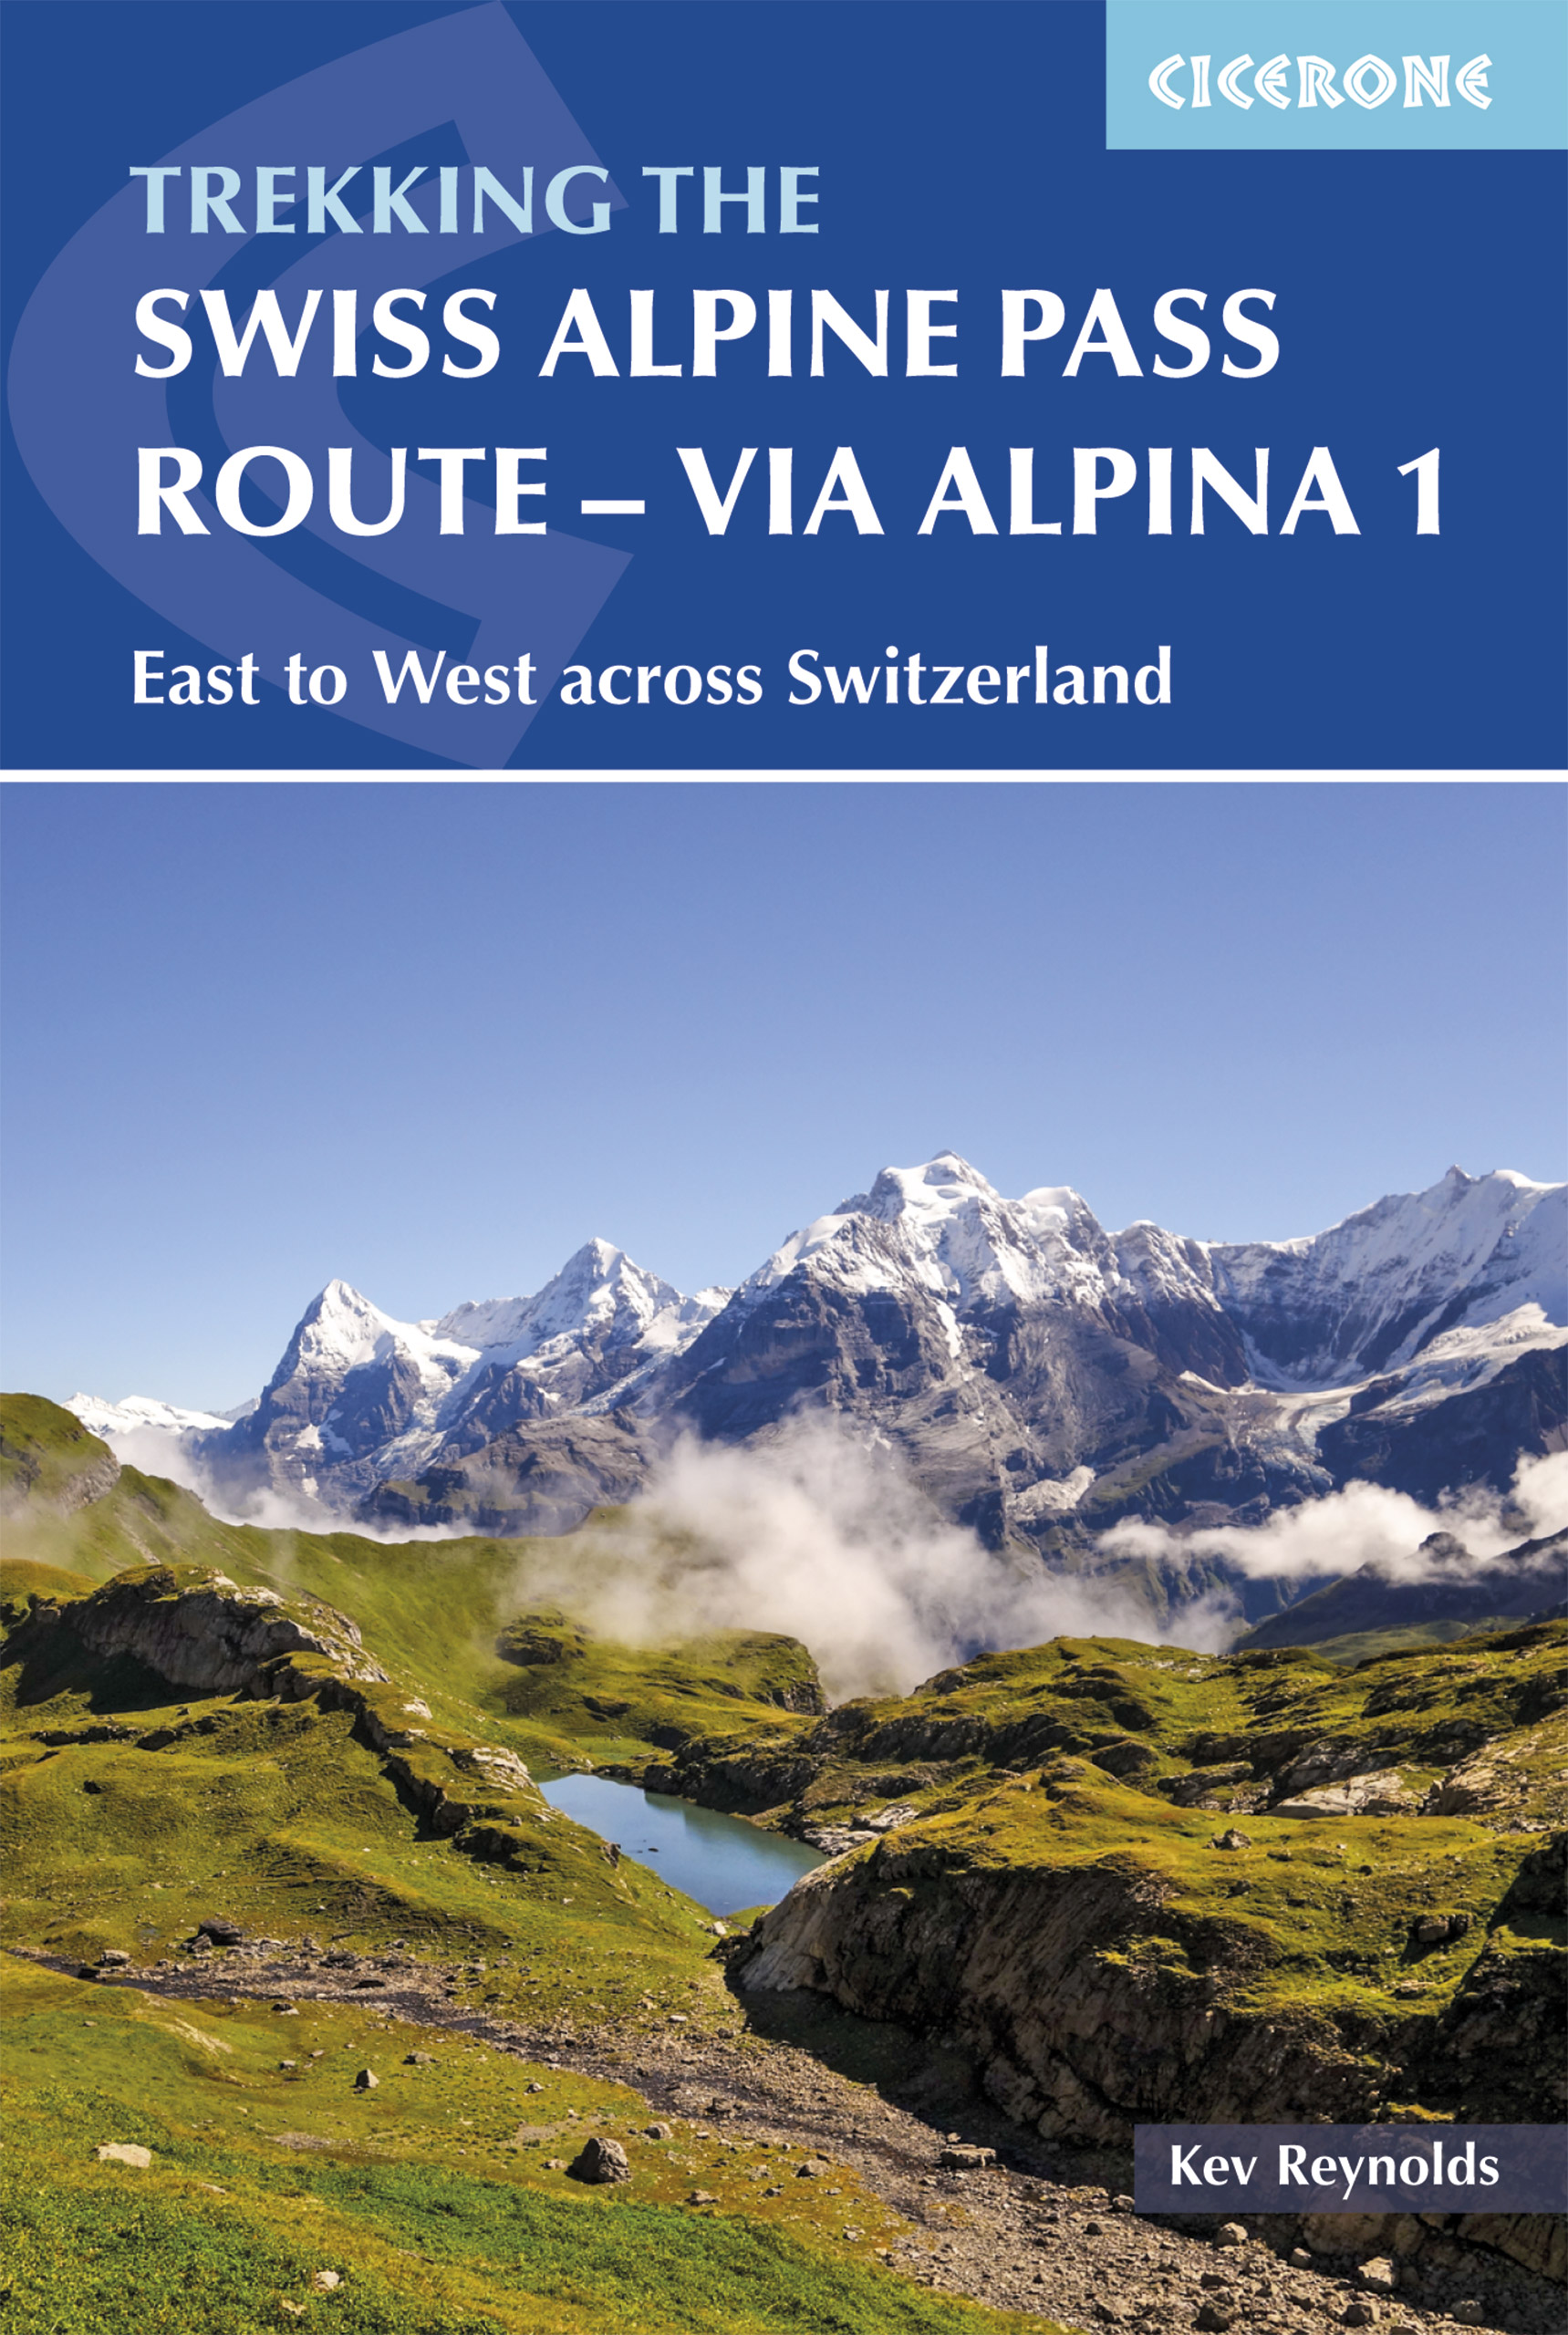 The Swiss Alpine Pass Route – Via Alpina 1